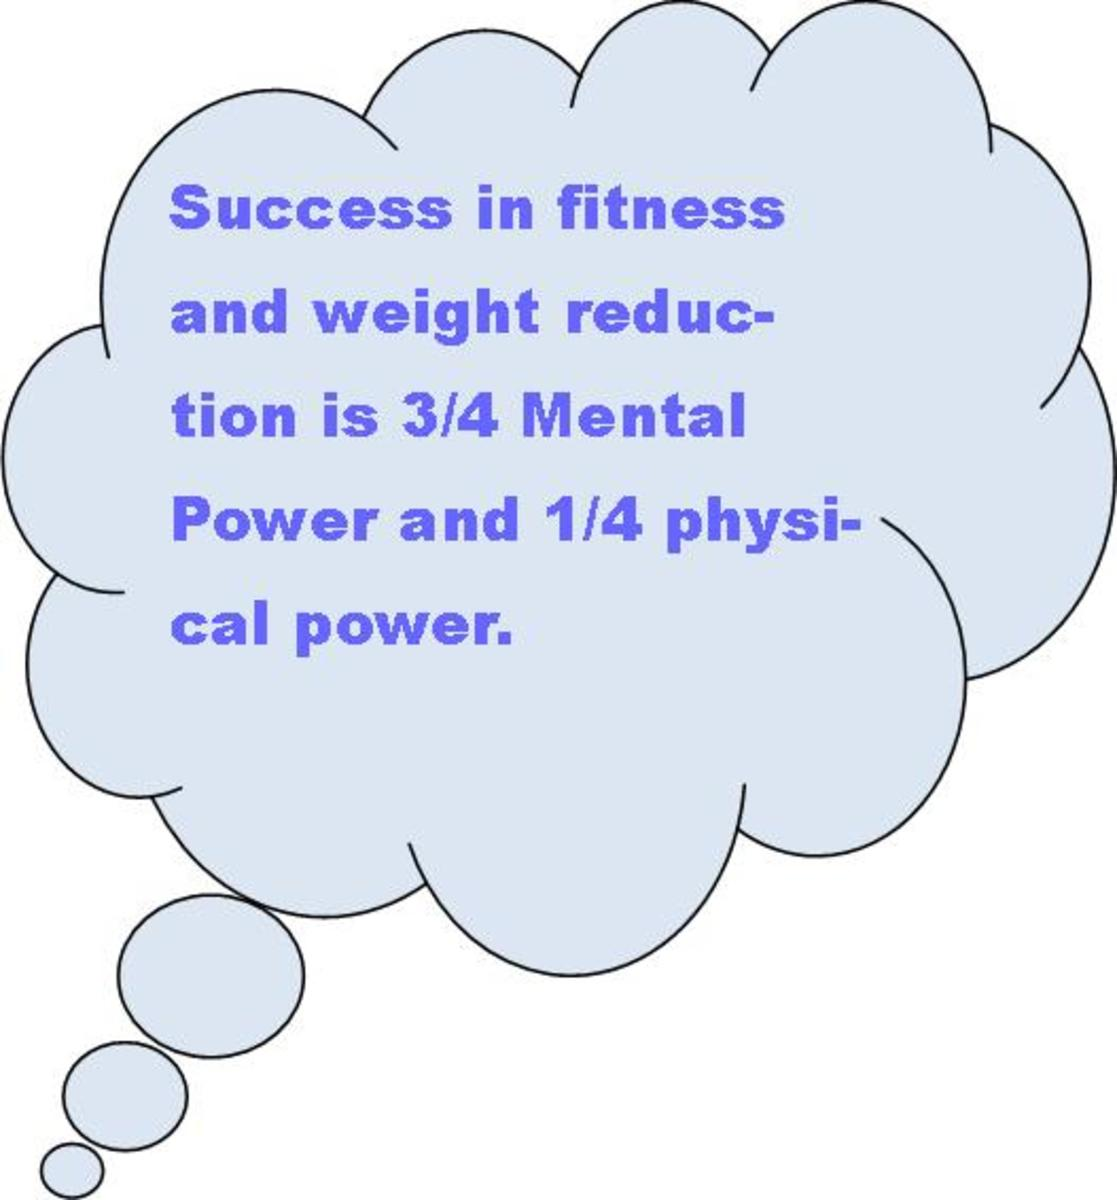 Re-frame your thoughts about your fitness and weight loss goals.